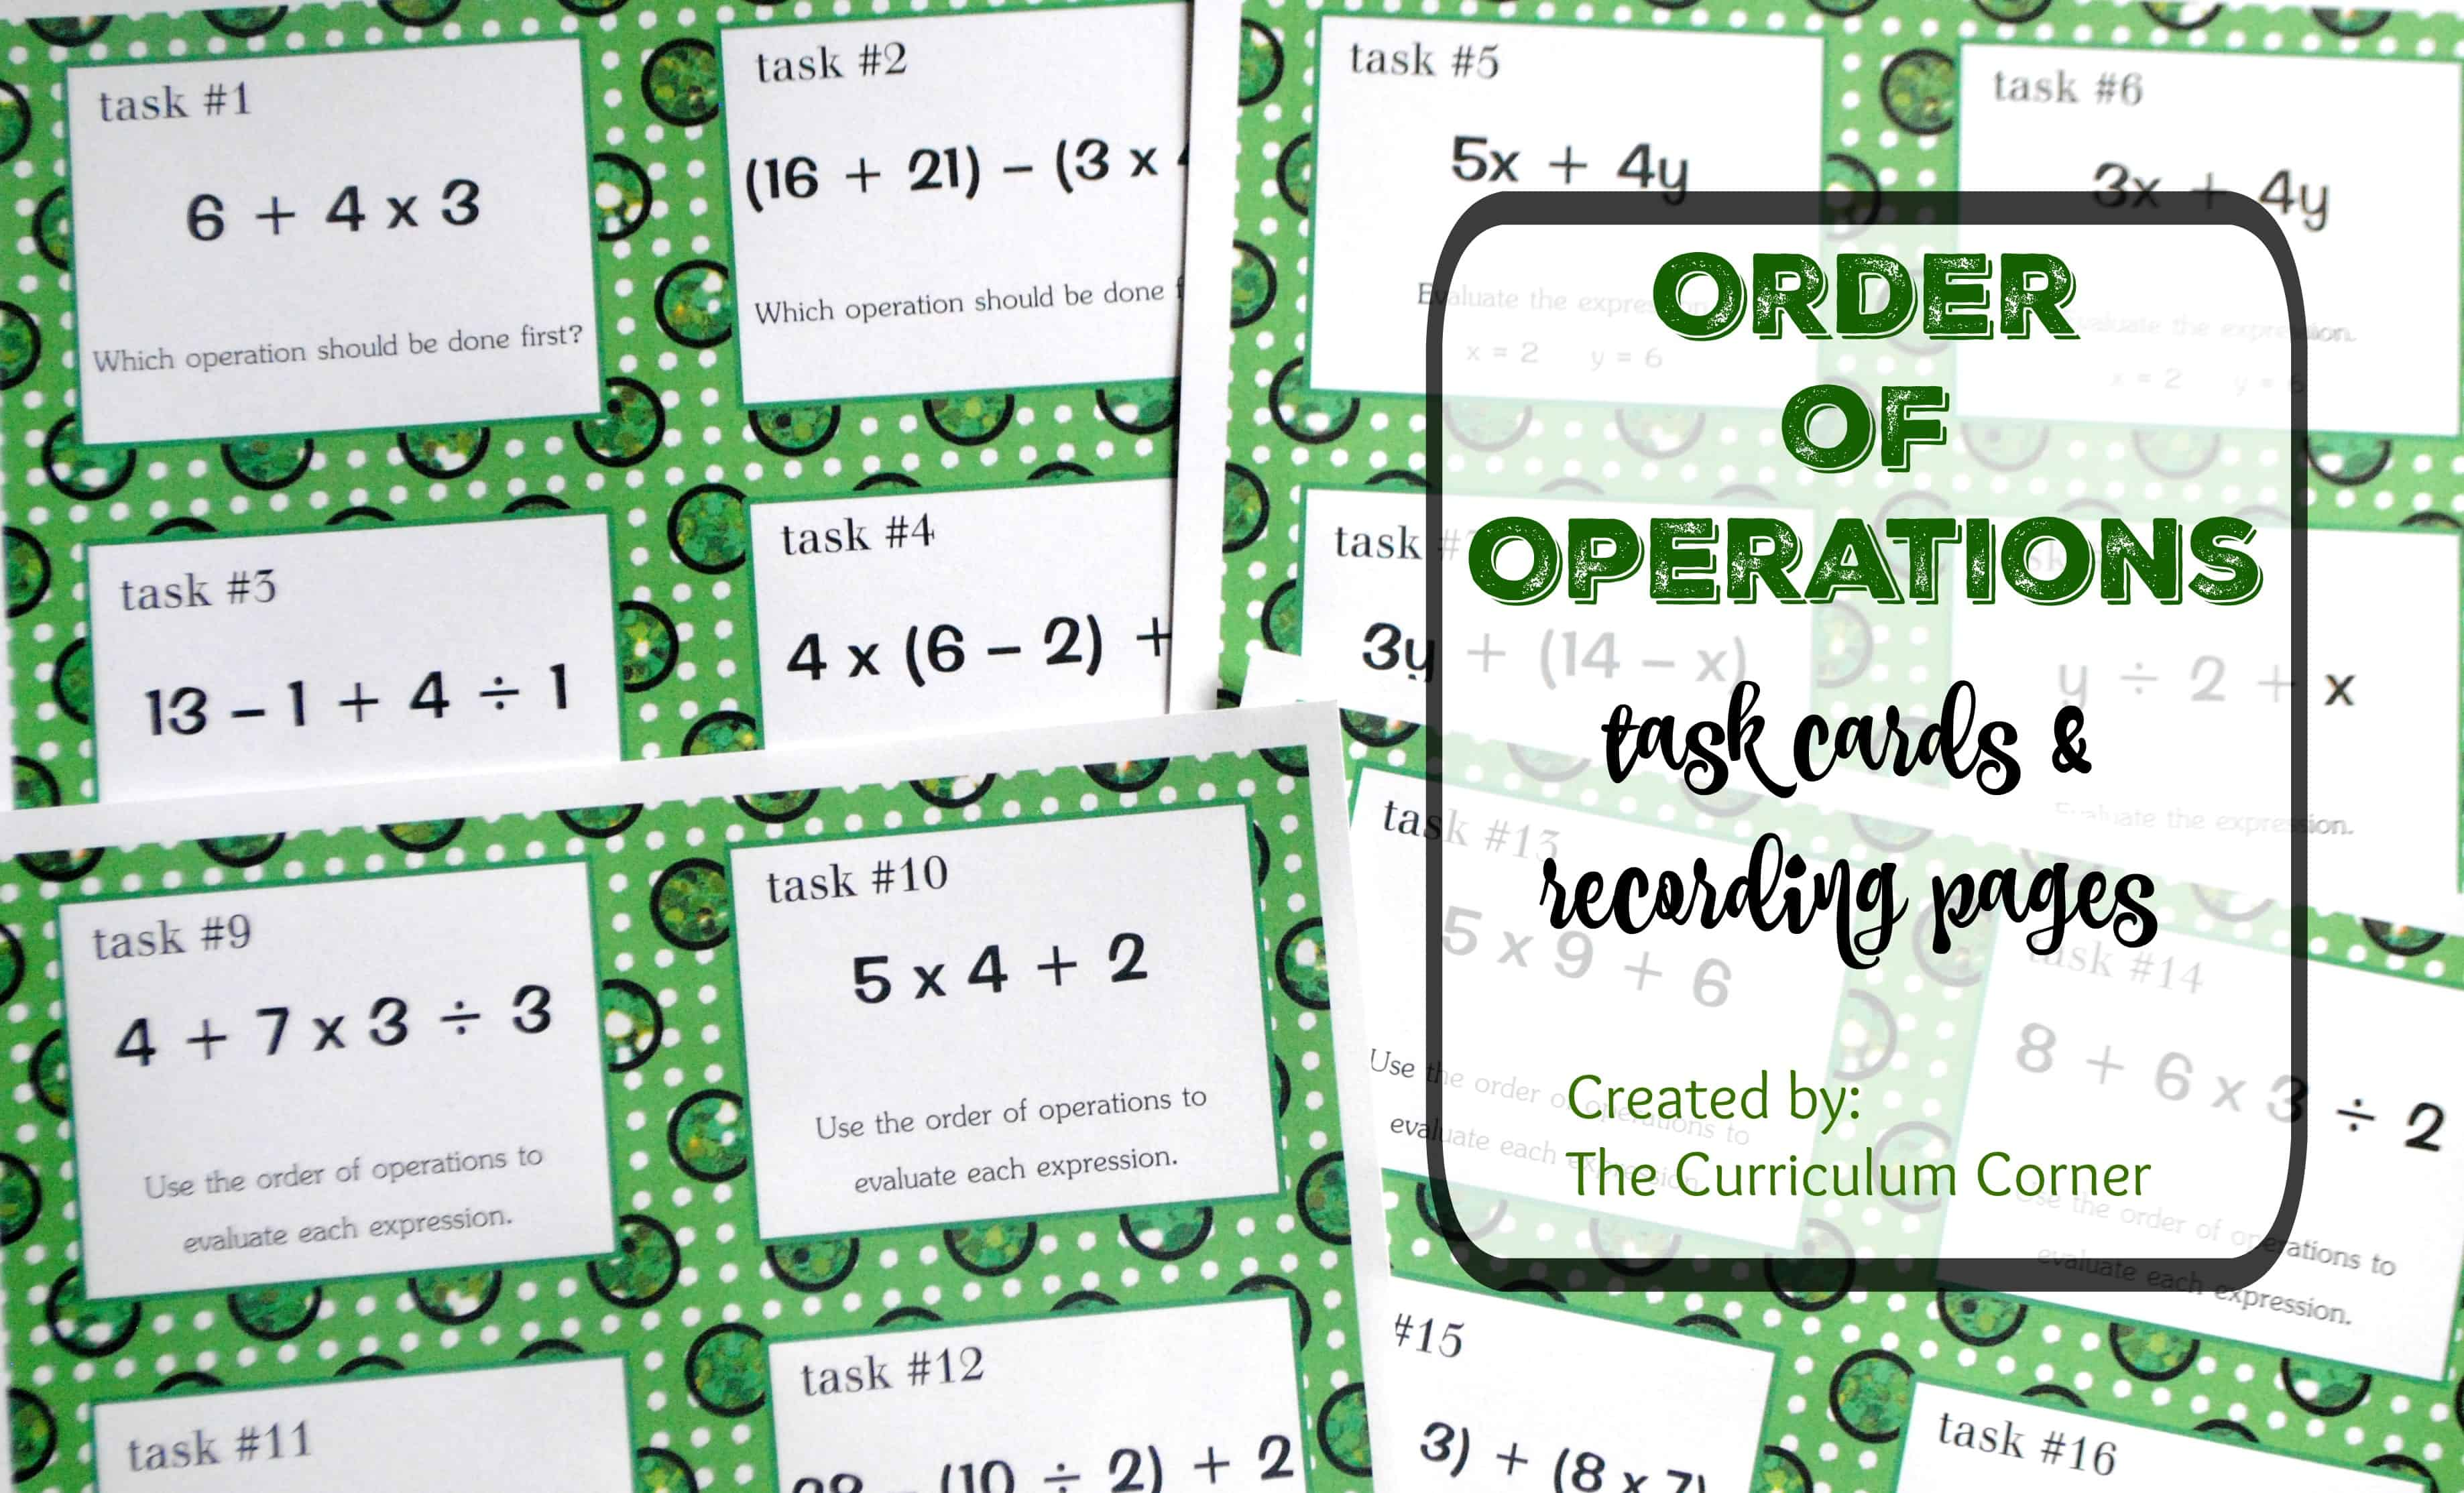 worksheet Order Of Operation order of operations task cards the curriculum corner 4 5 6 free recording pages from 5th grade